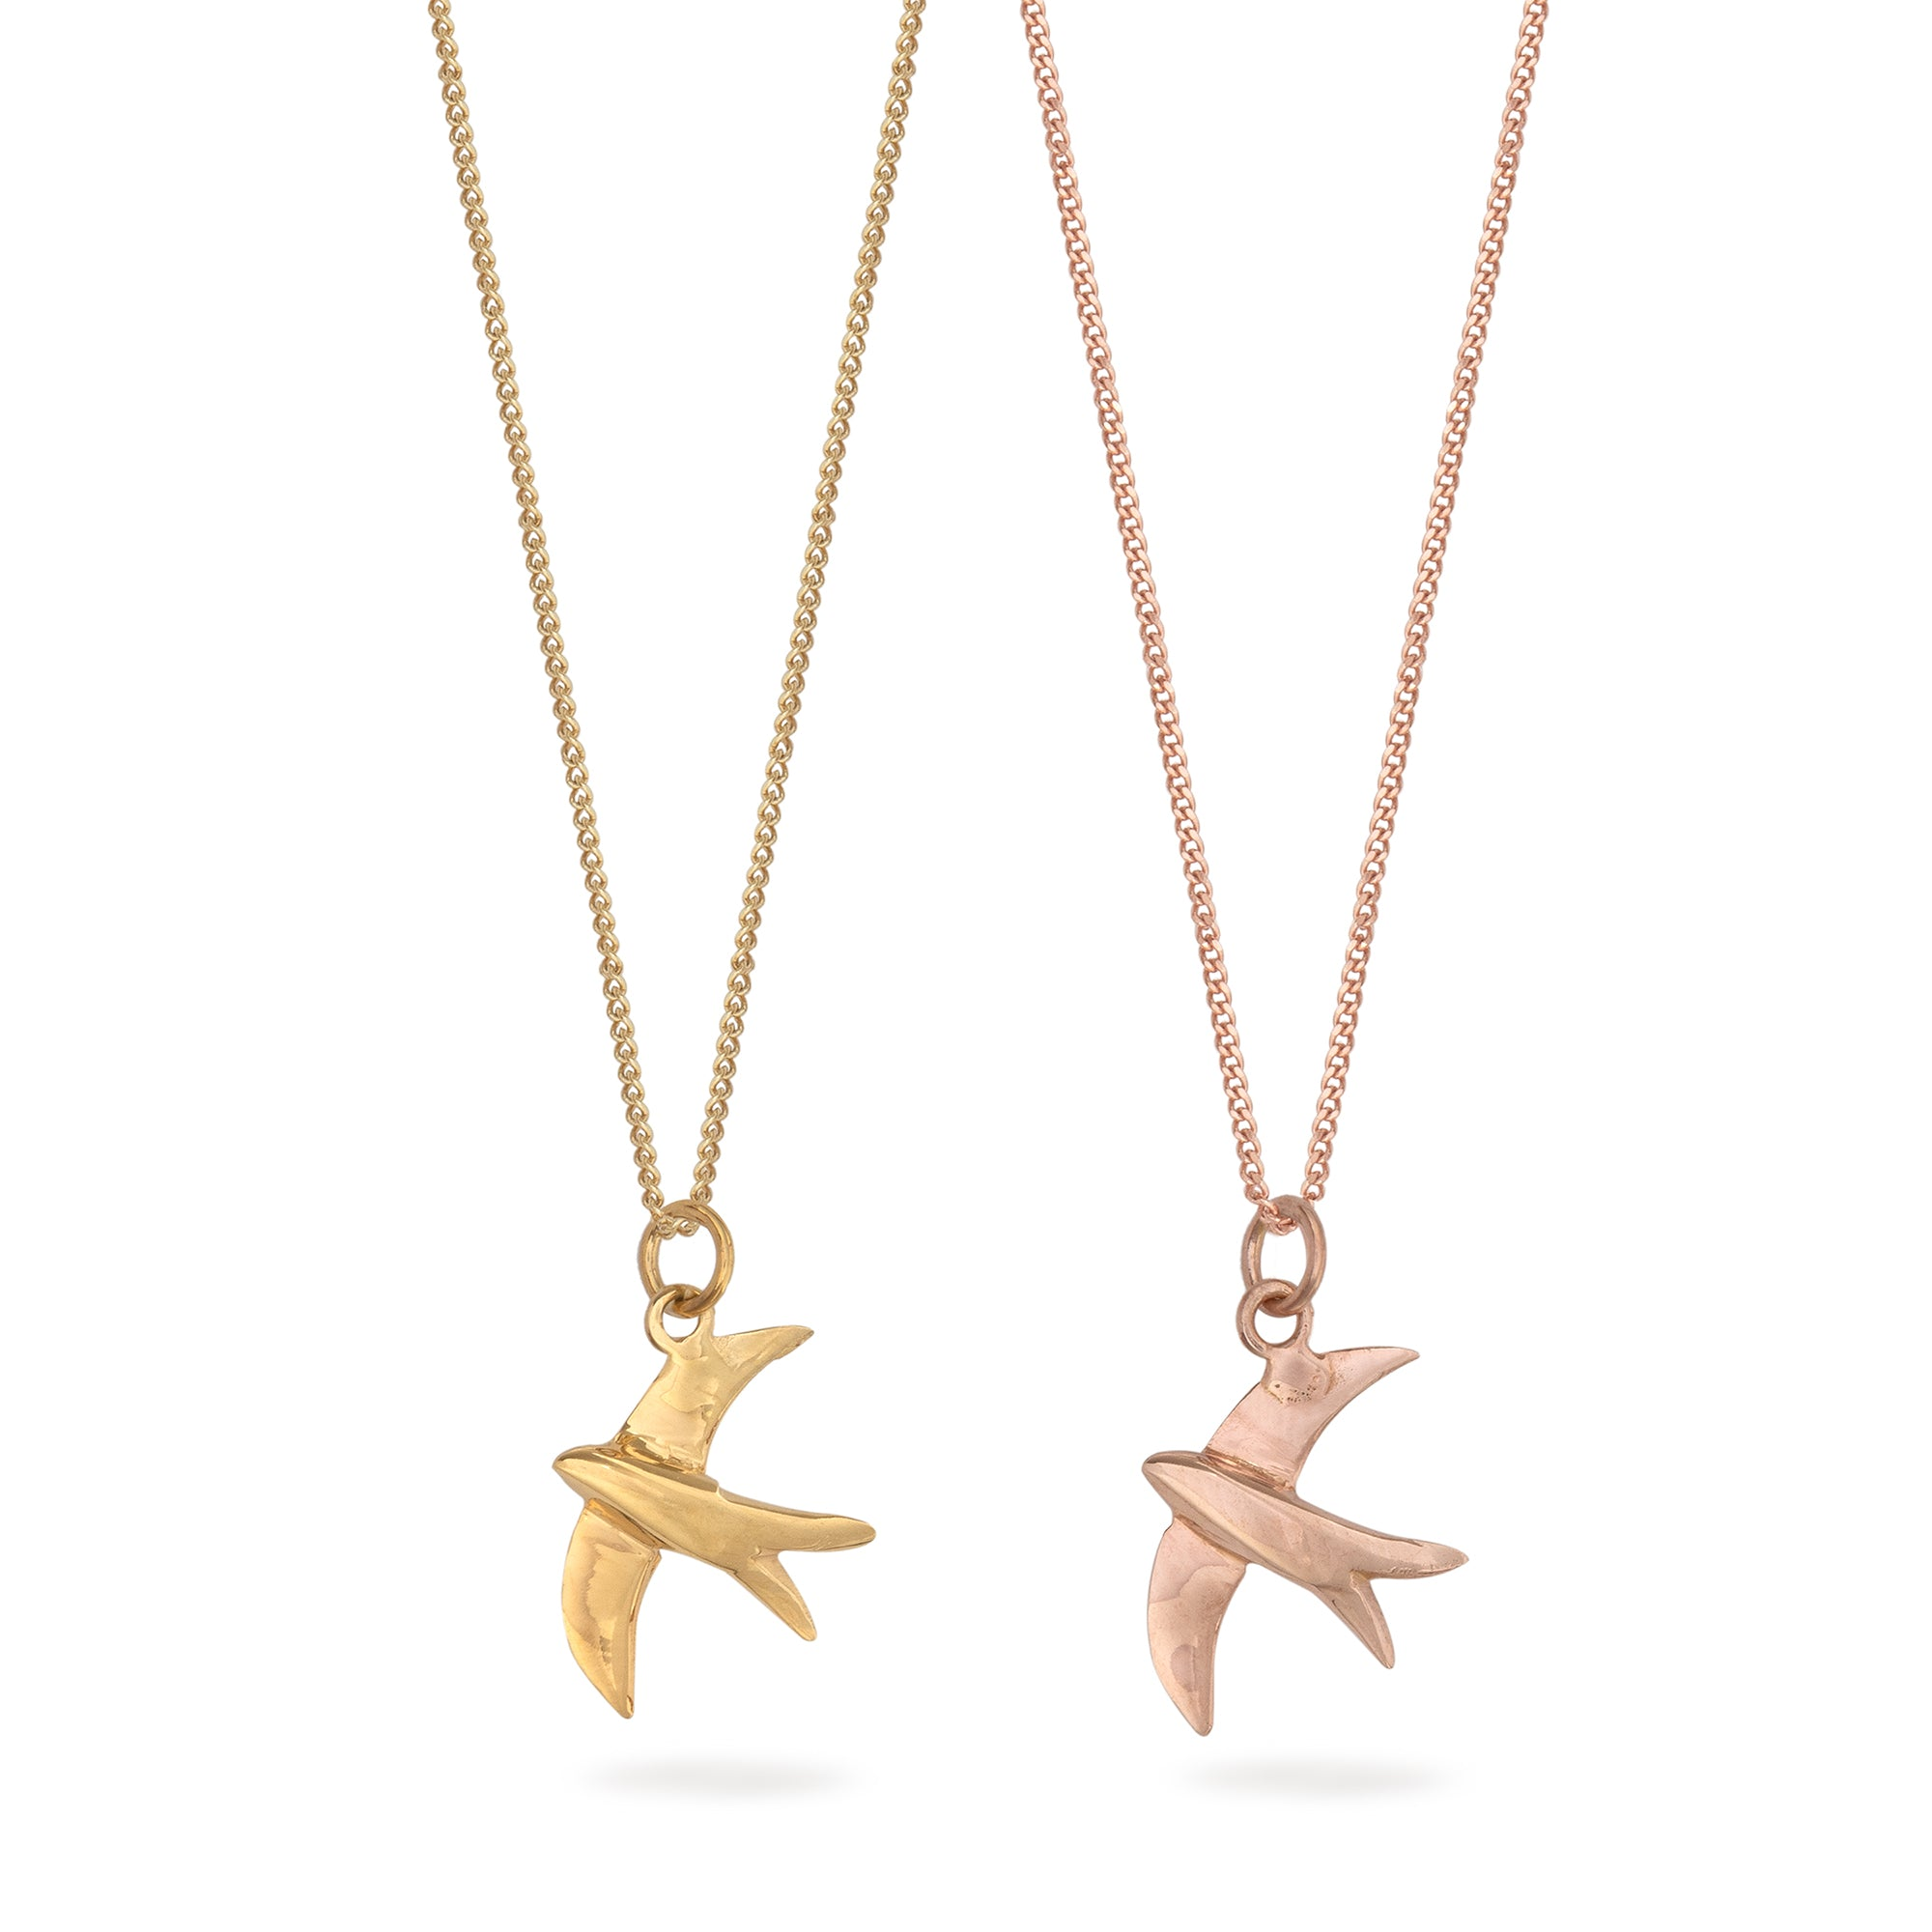 Swallow Charm Necklace Gold or Rose Gold Vermeil